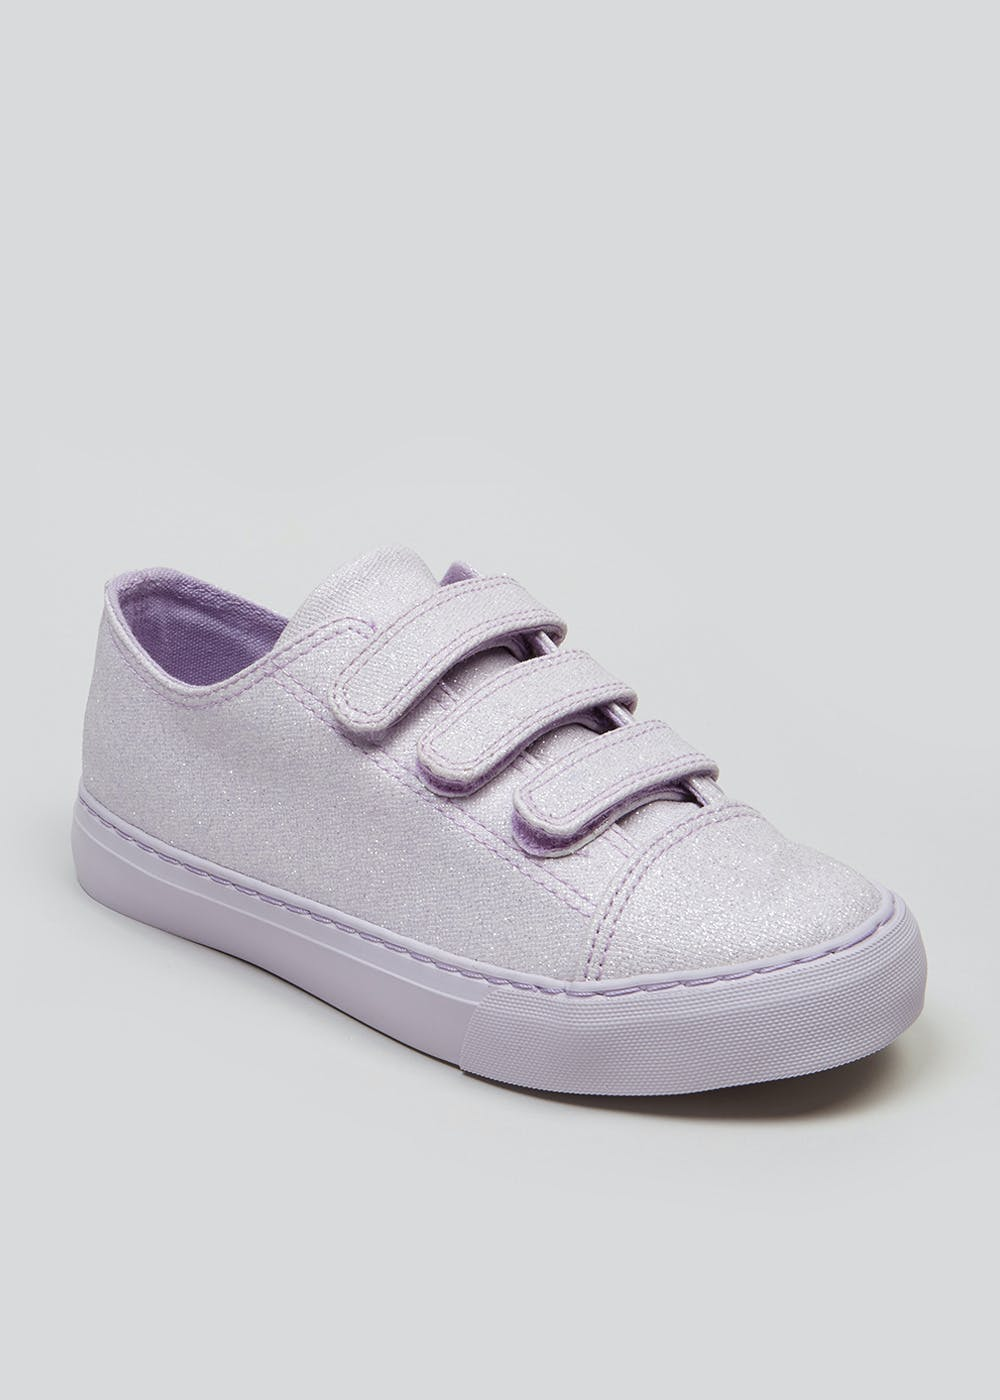 4376e9aeda0c Kids Riptape Glitter Canvas Trainers (Younger 10-Older 5) – Lilac ...